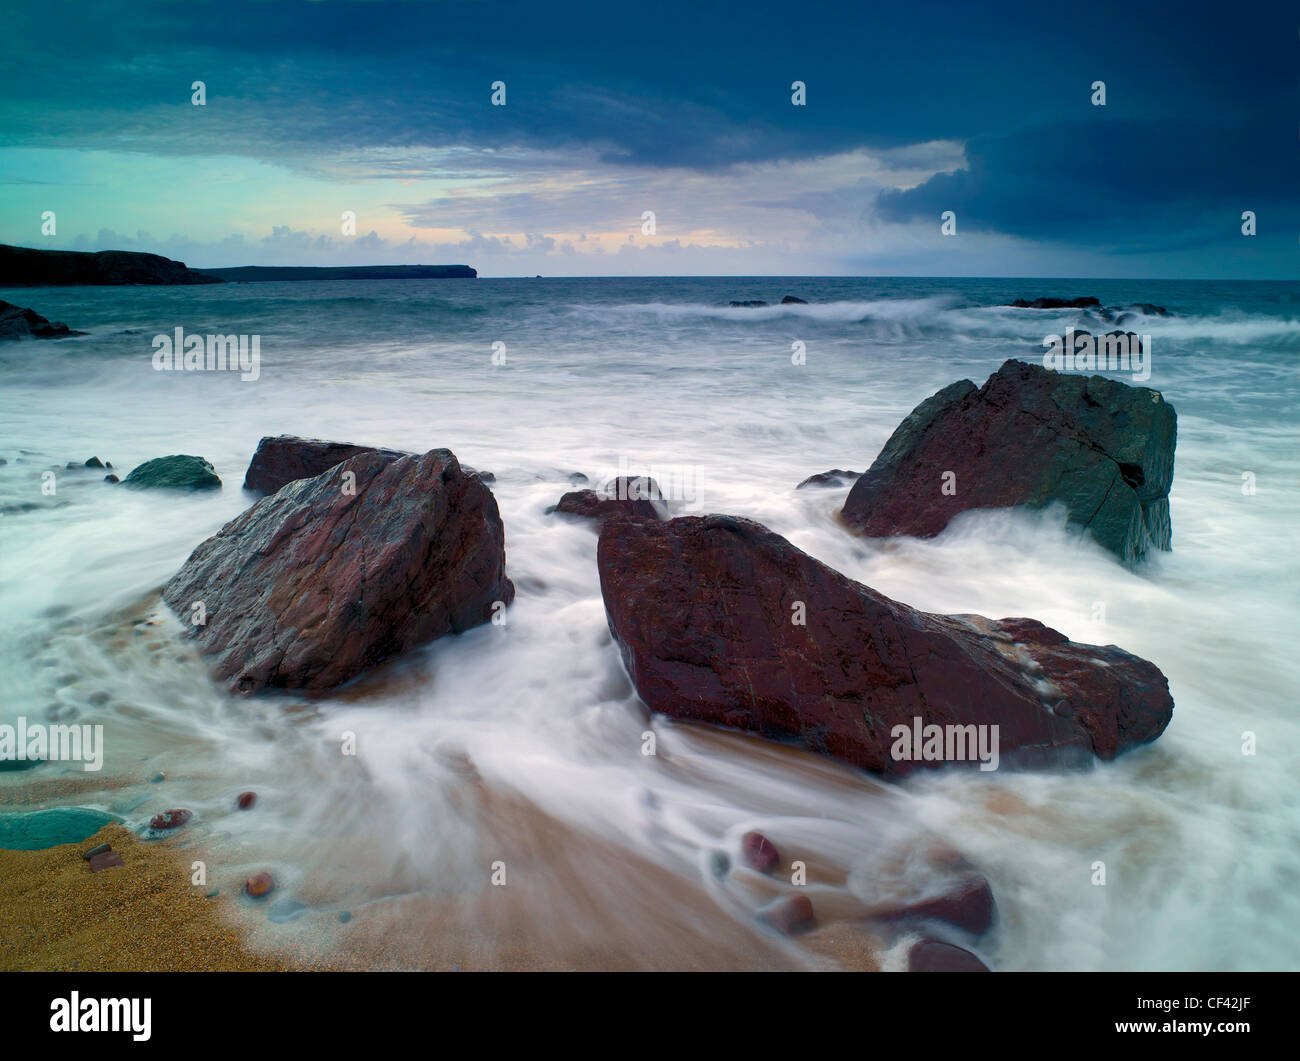 Waves roll onto the beach around large boulders at Freshwater West during high tide. - Stock Image